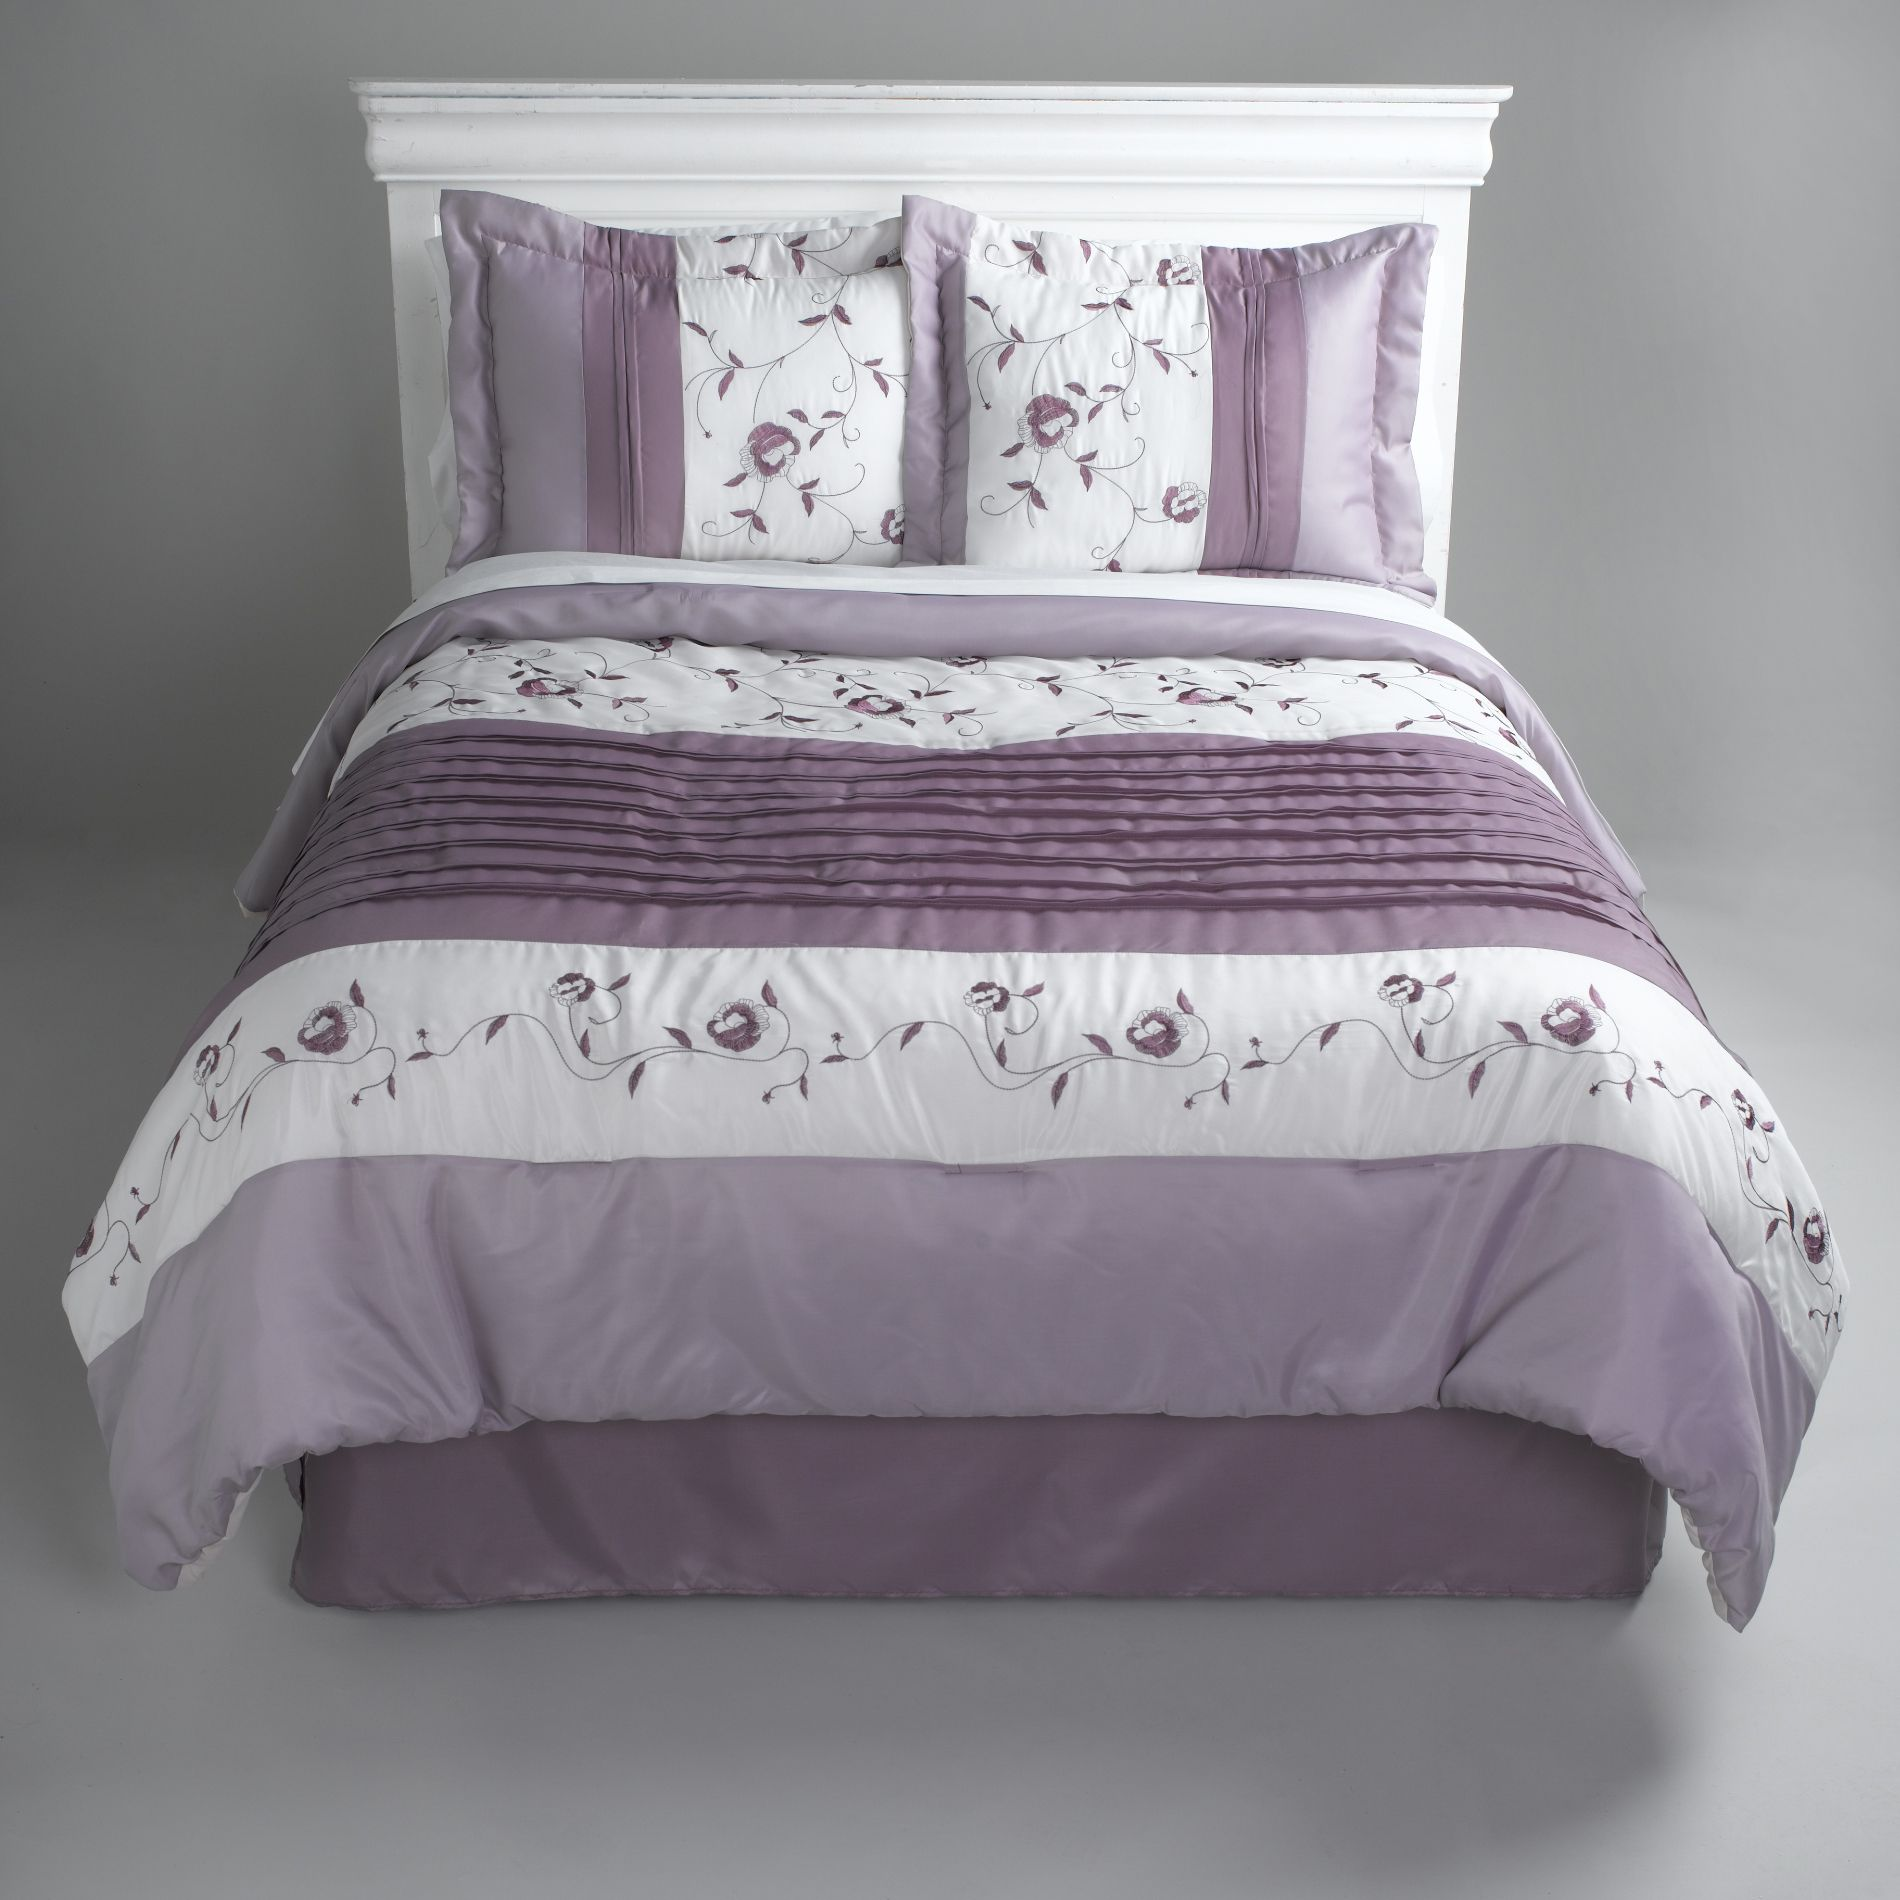 Kardashian Kollection Home Comforters : Find Decorative